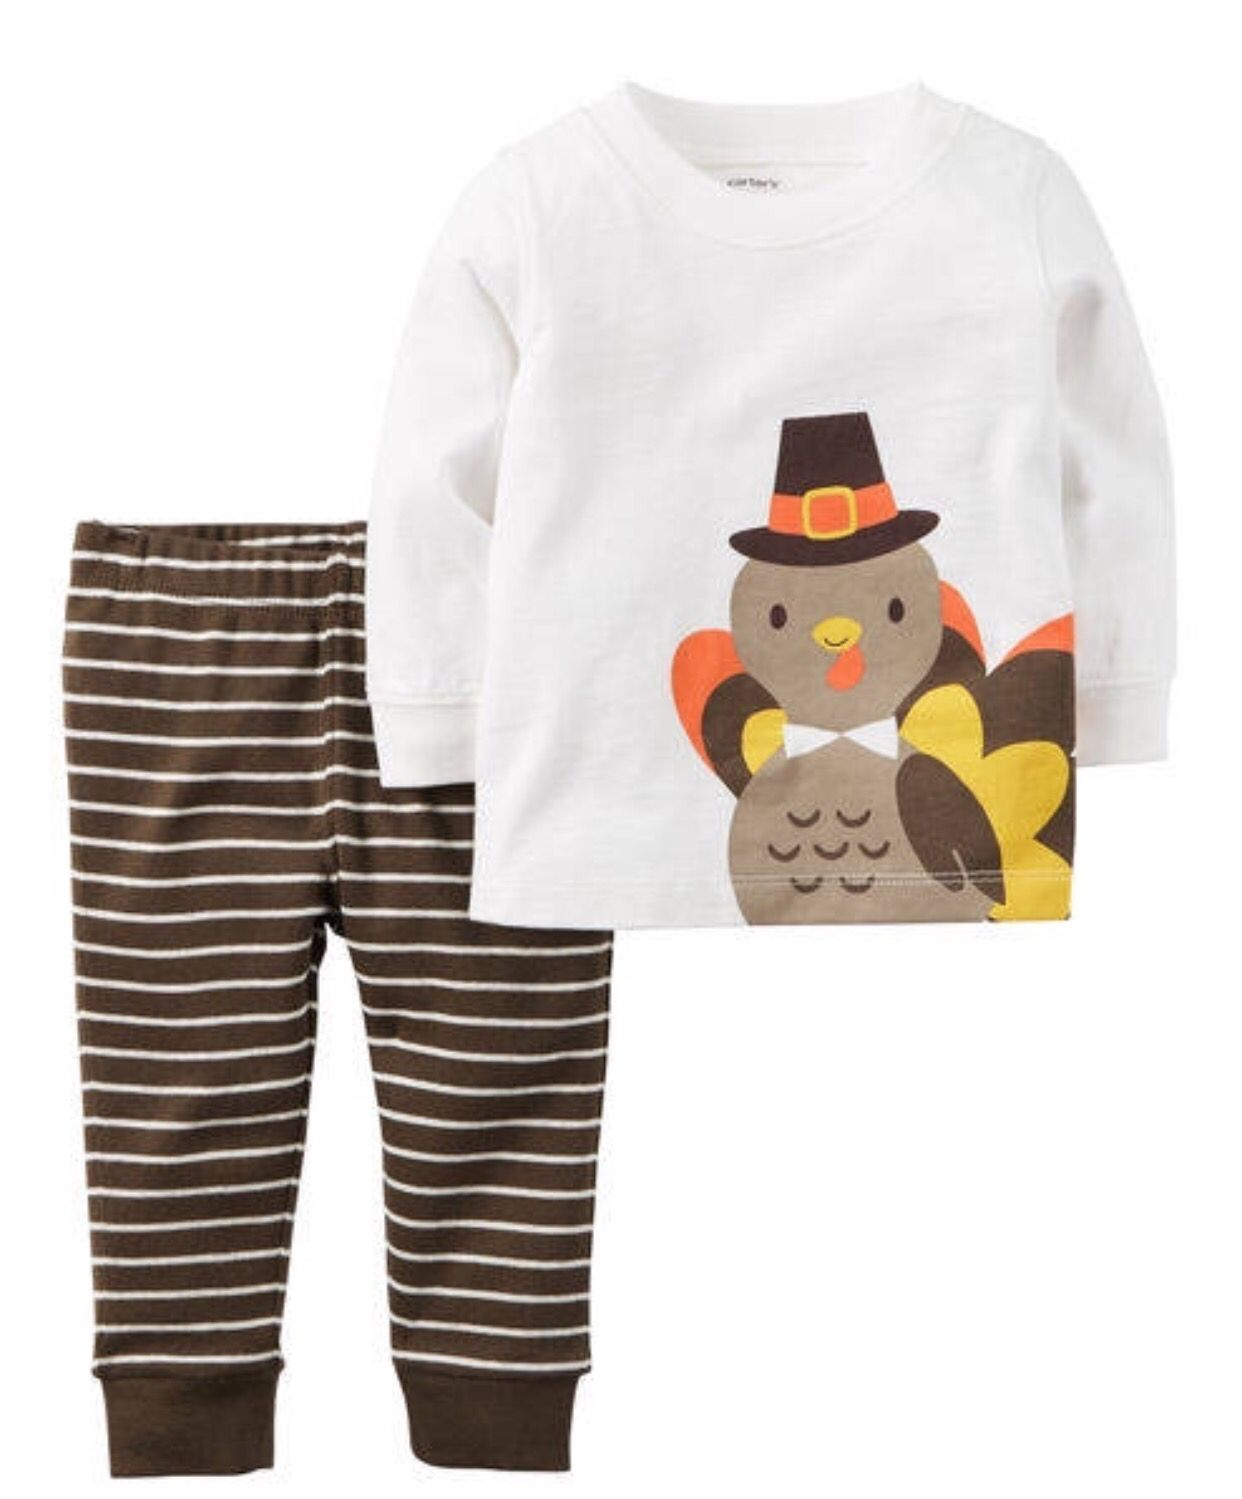 Pin by Peyton Clark on Baby clothes (With images) Boy